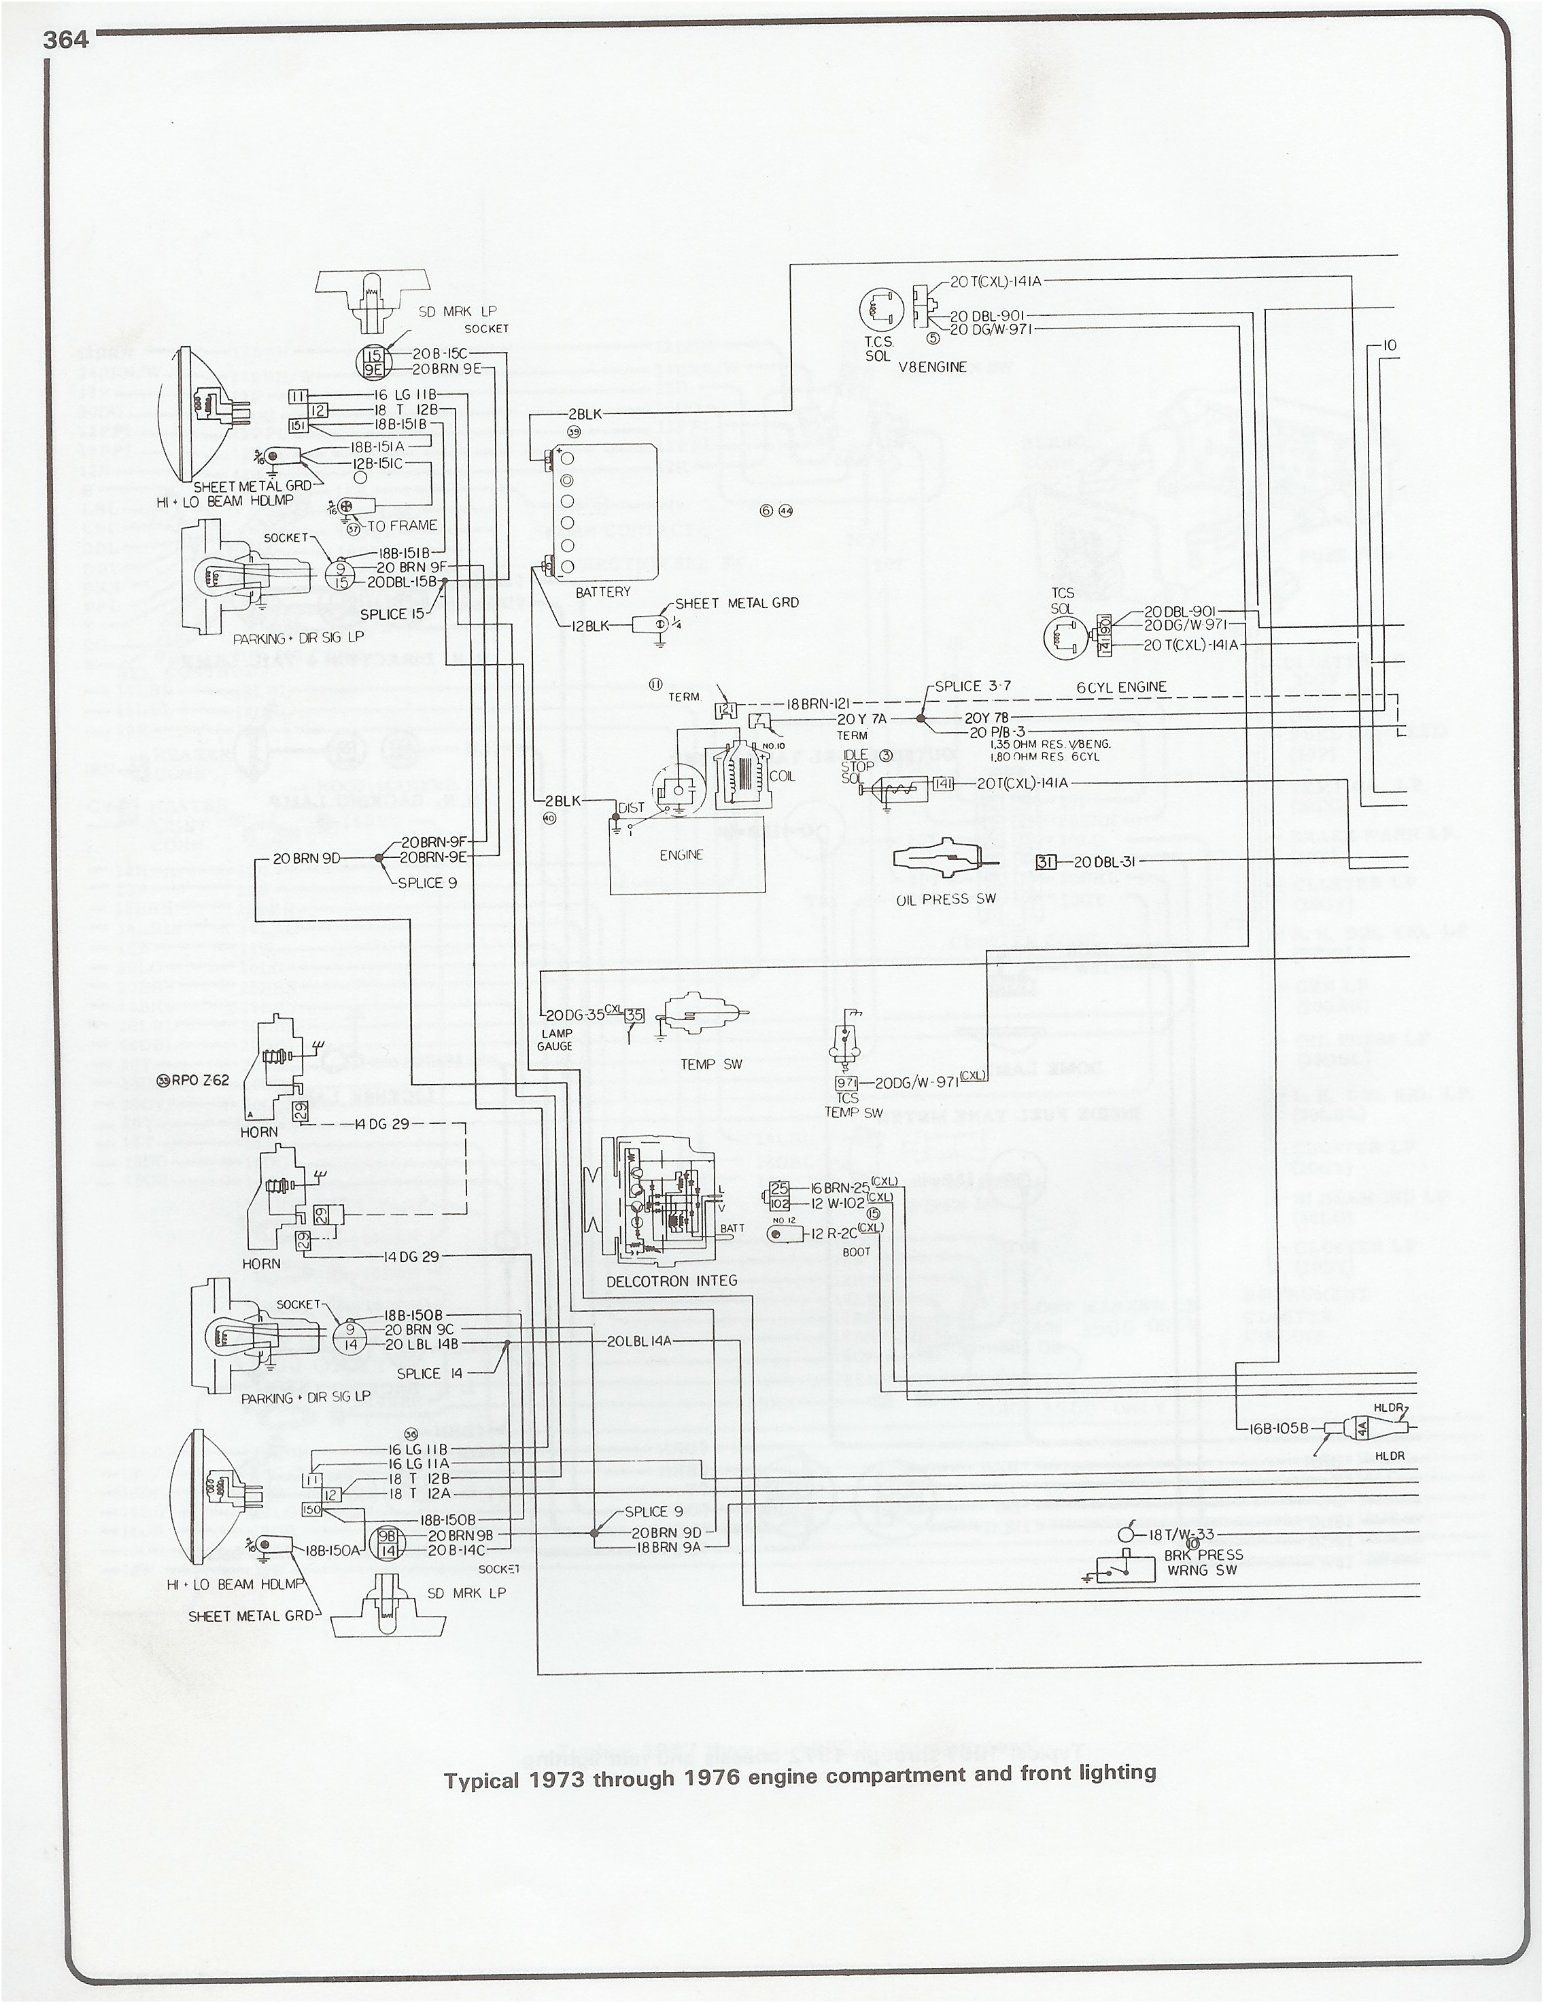 Tremendous Wiring Diagram 1973 1976 Chevy Pickup Chevy Wiring Diagram Wiring Digital Resources Llinedefiancerspsorg